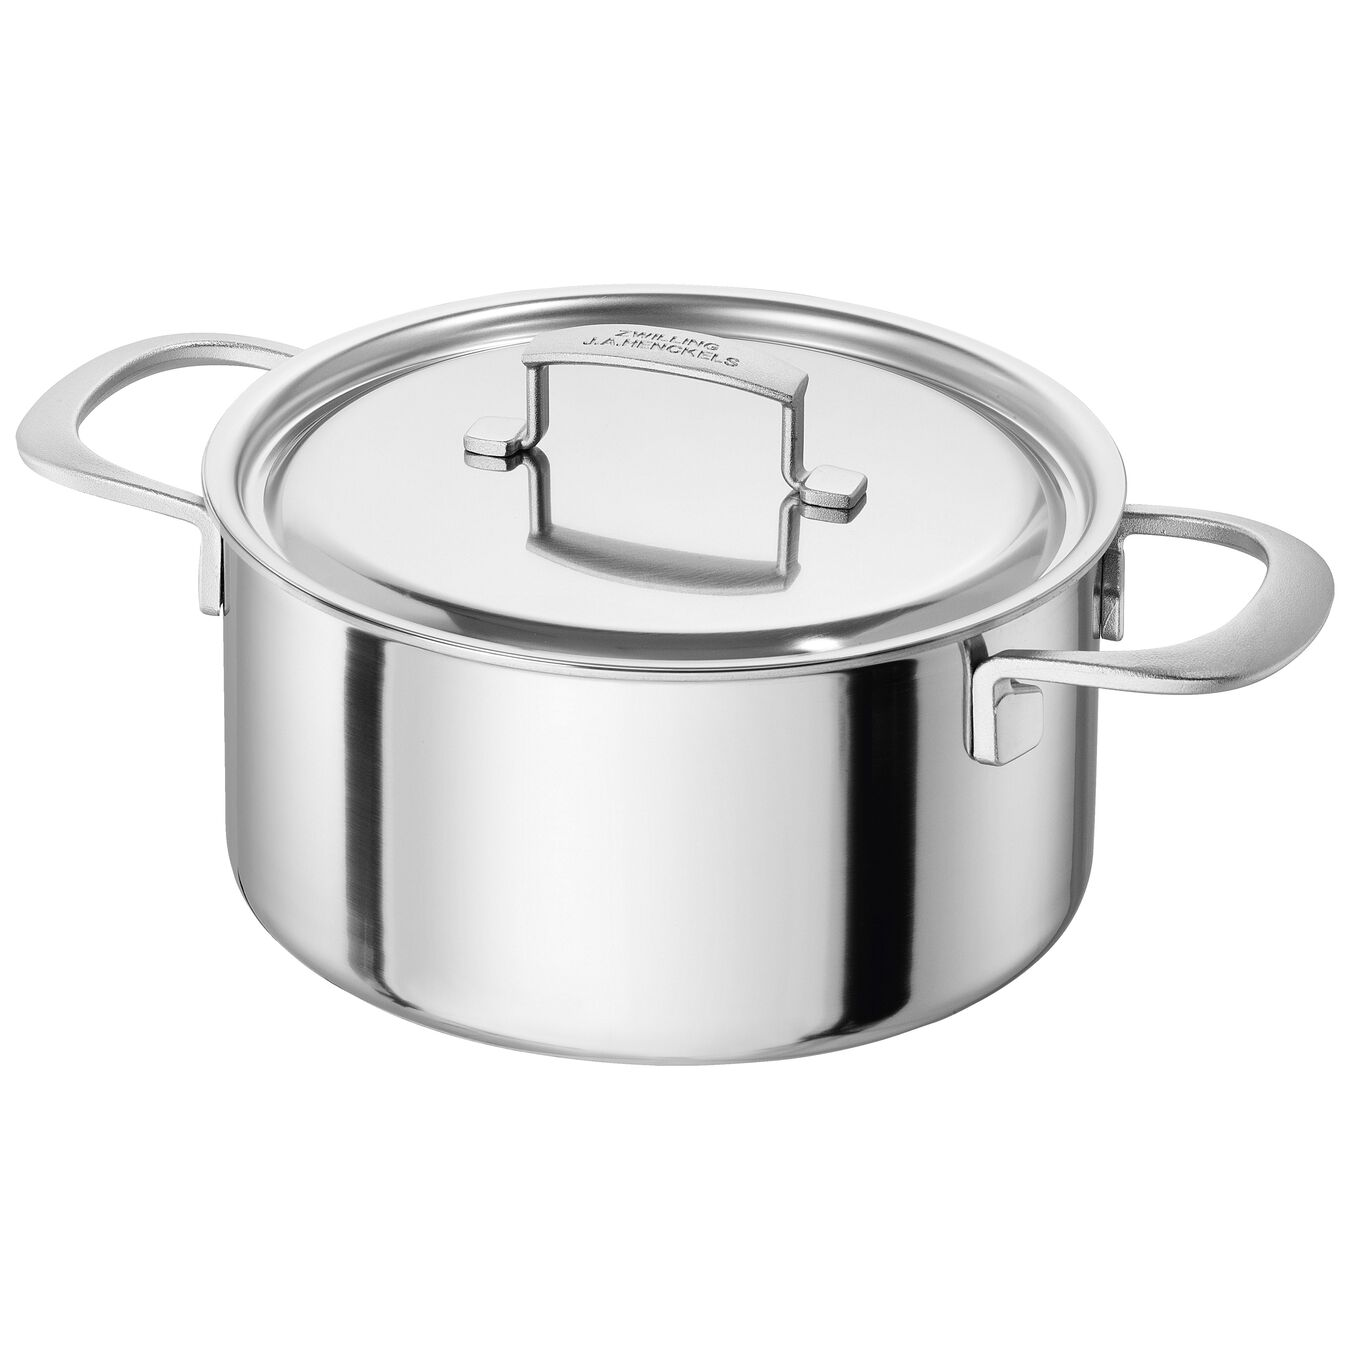 5,25 l 18/10 Stainless Steel Faitout,,large 1